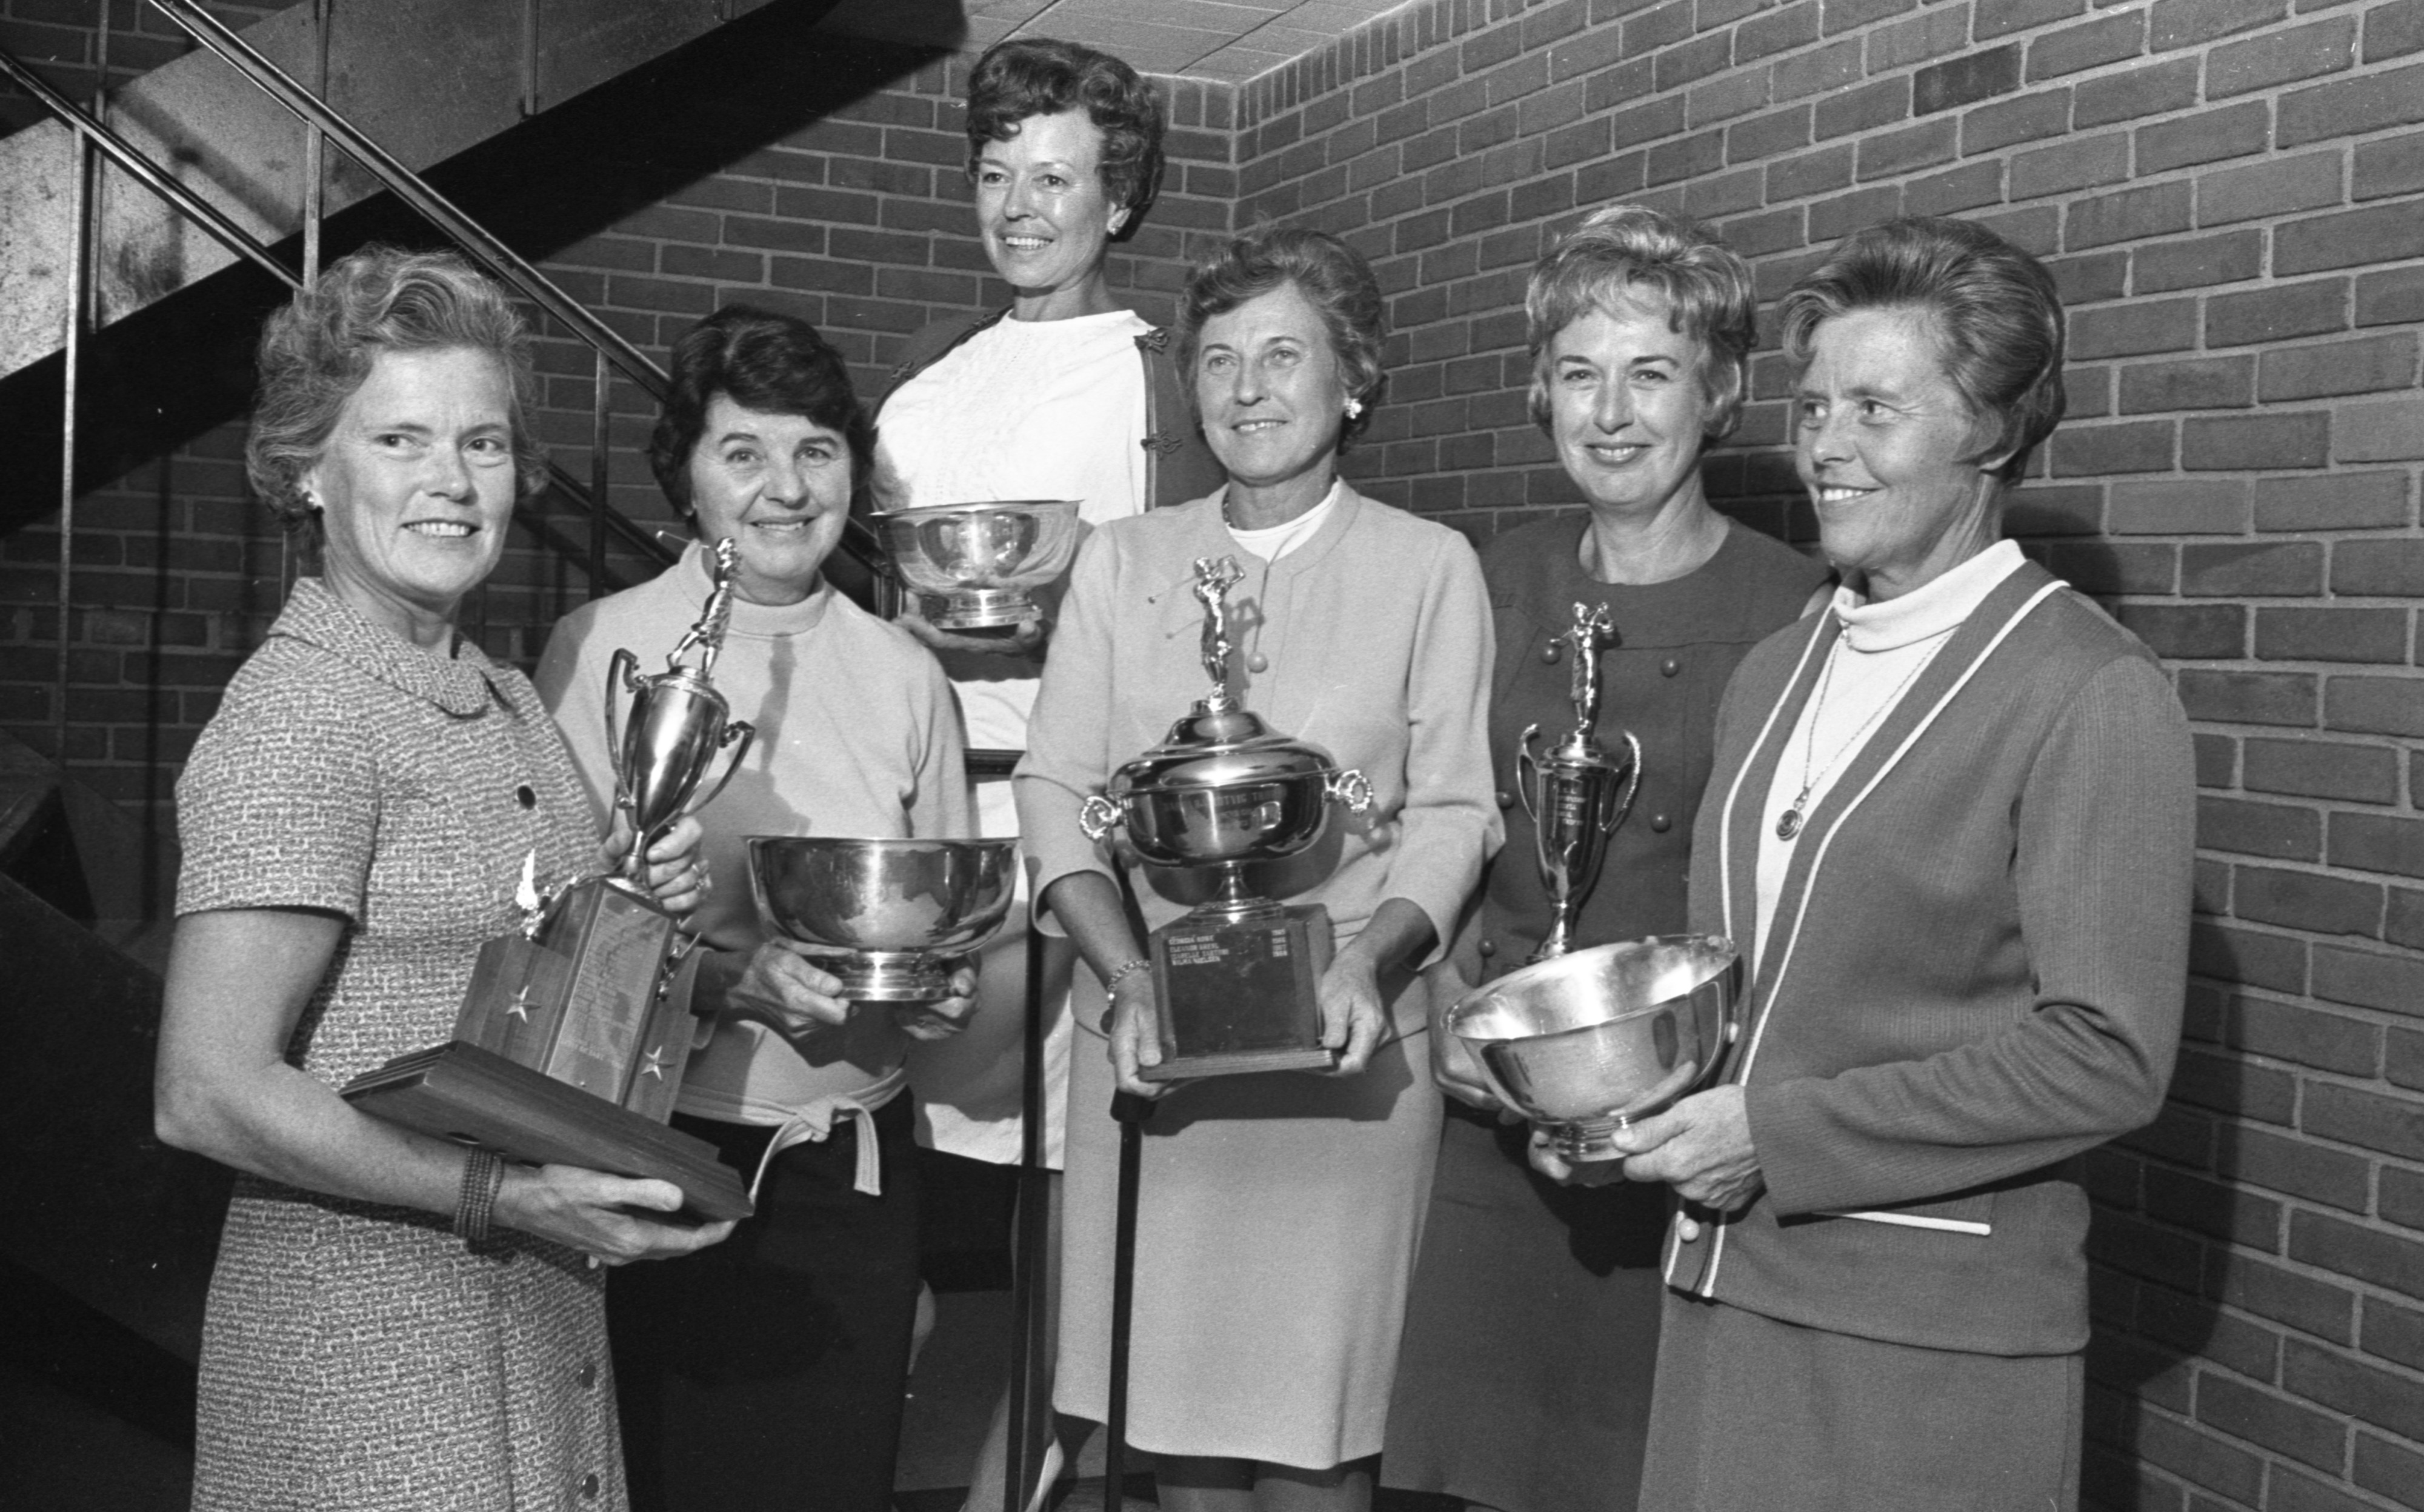 Ann Arbor Women's Golf Association Members Display Their 1968 Trophys At Fireside Lounge, September 1968 image